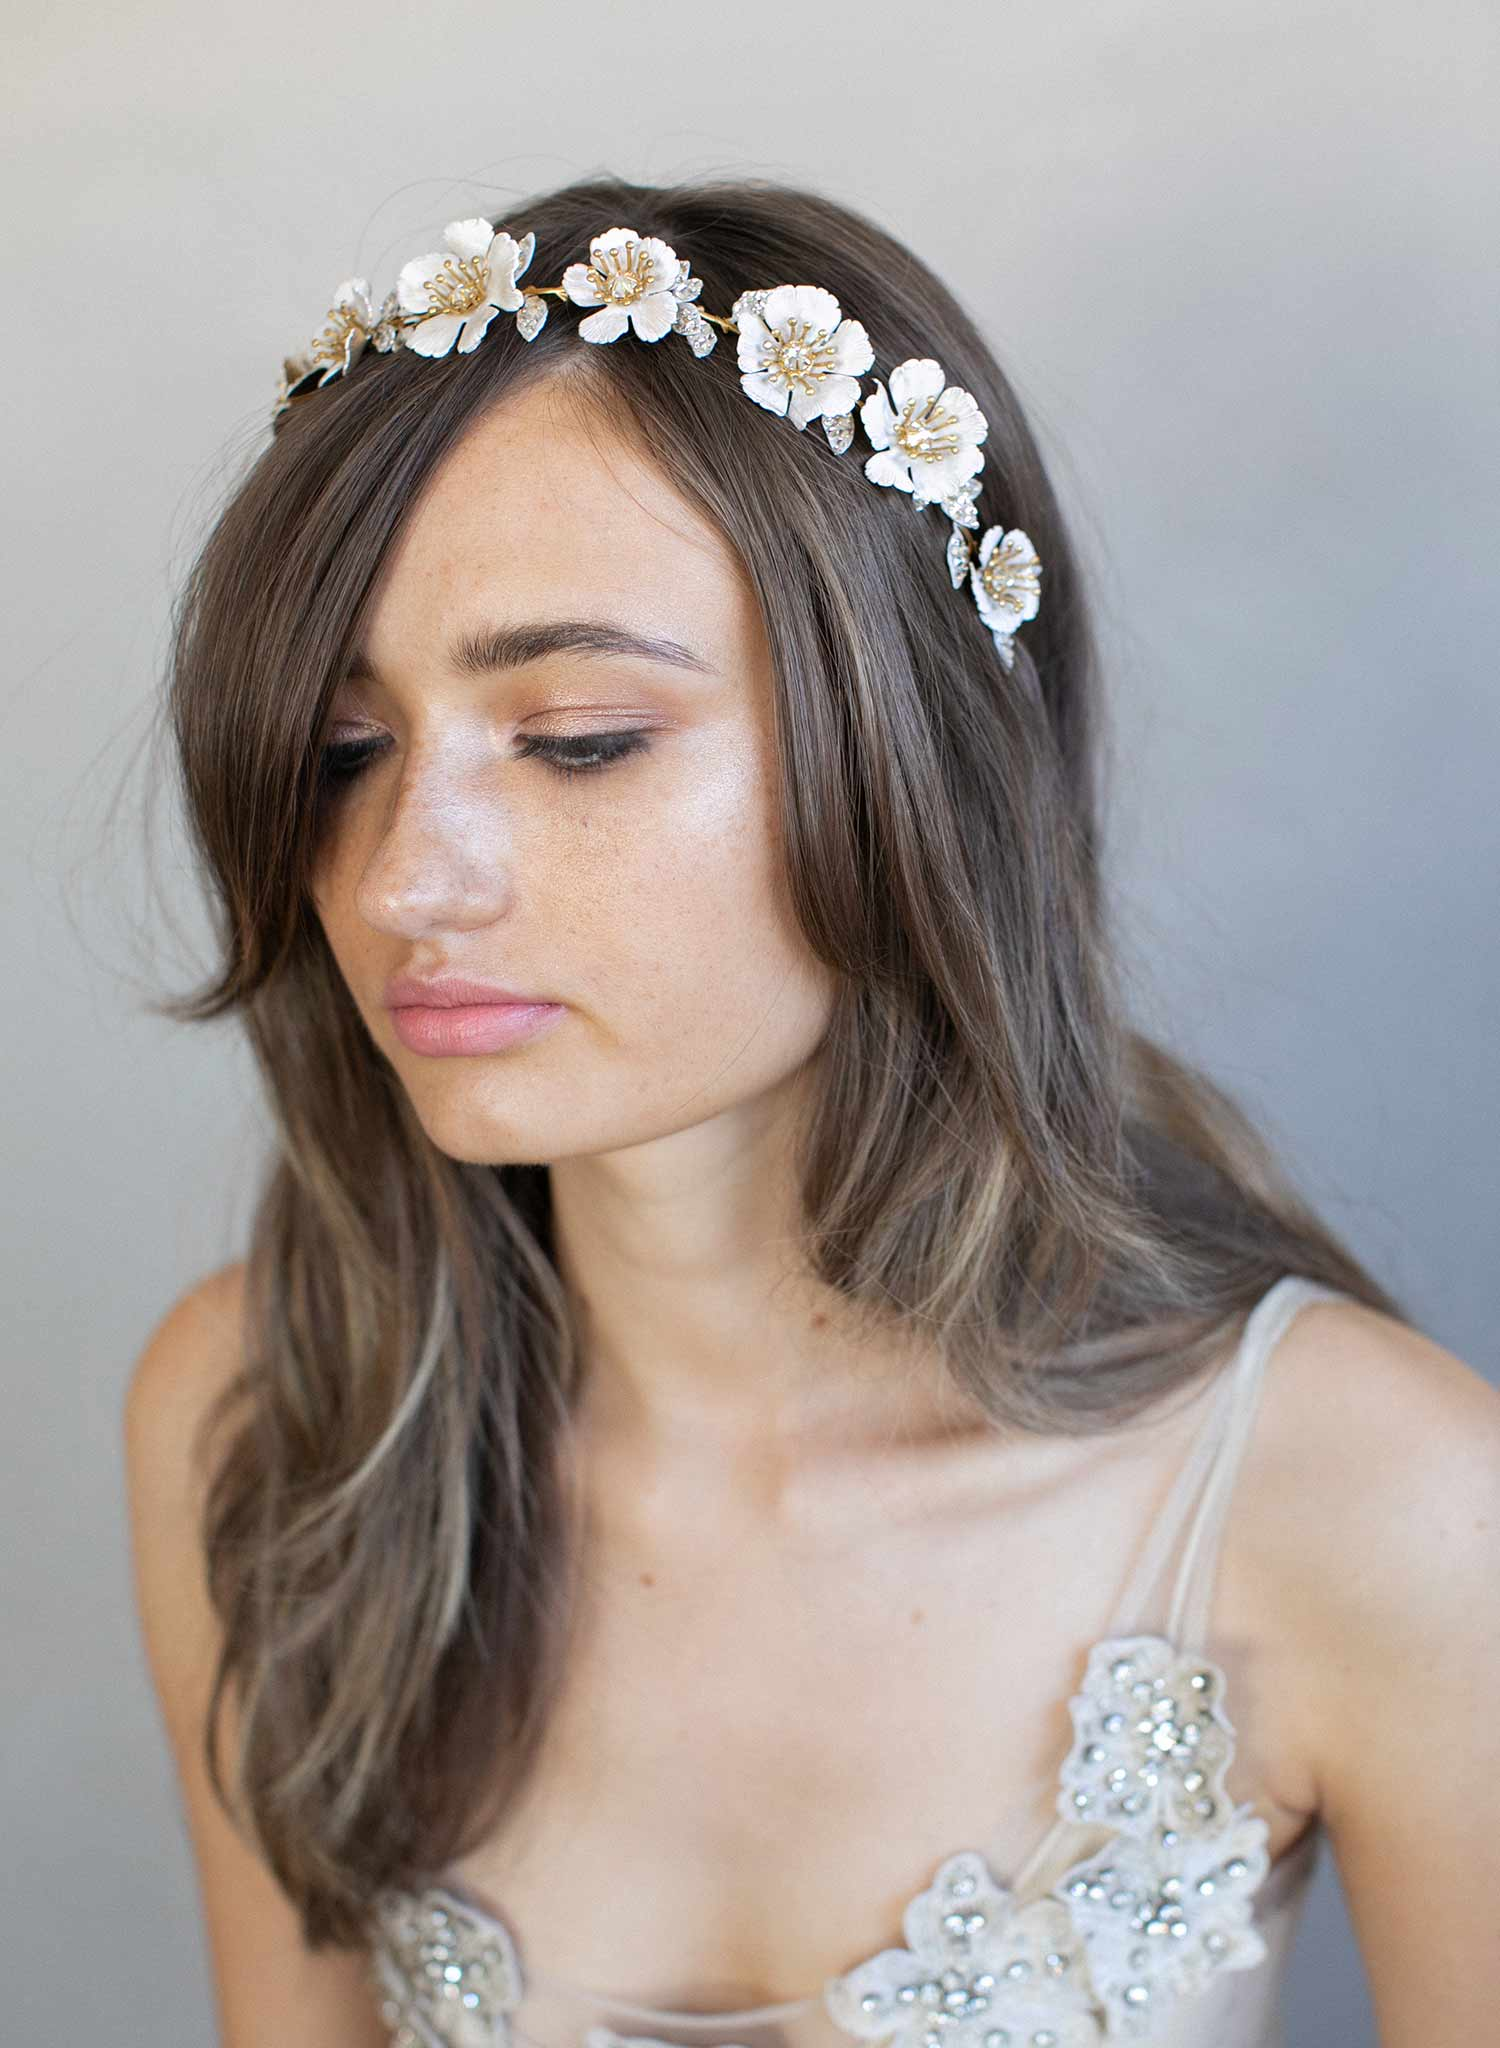 Bridal Floral Headband White Patina Flower Crown Style 926